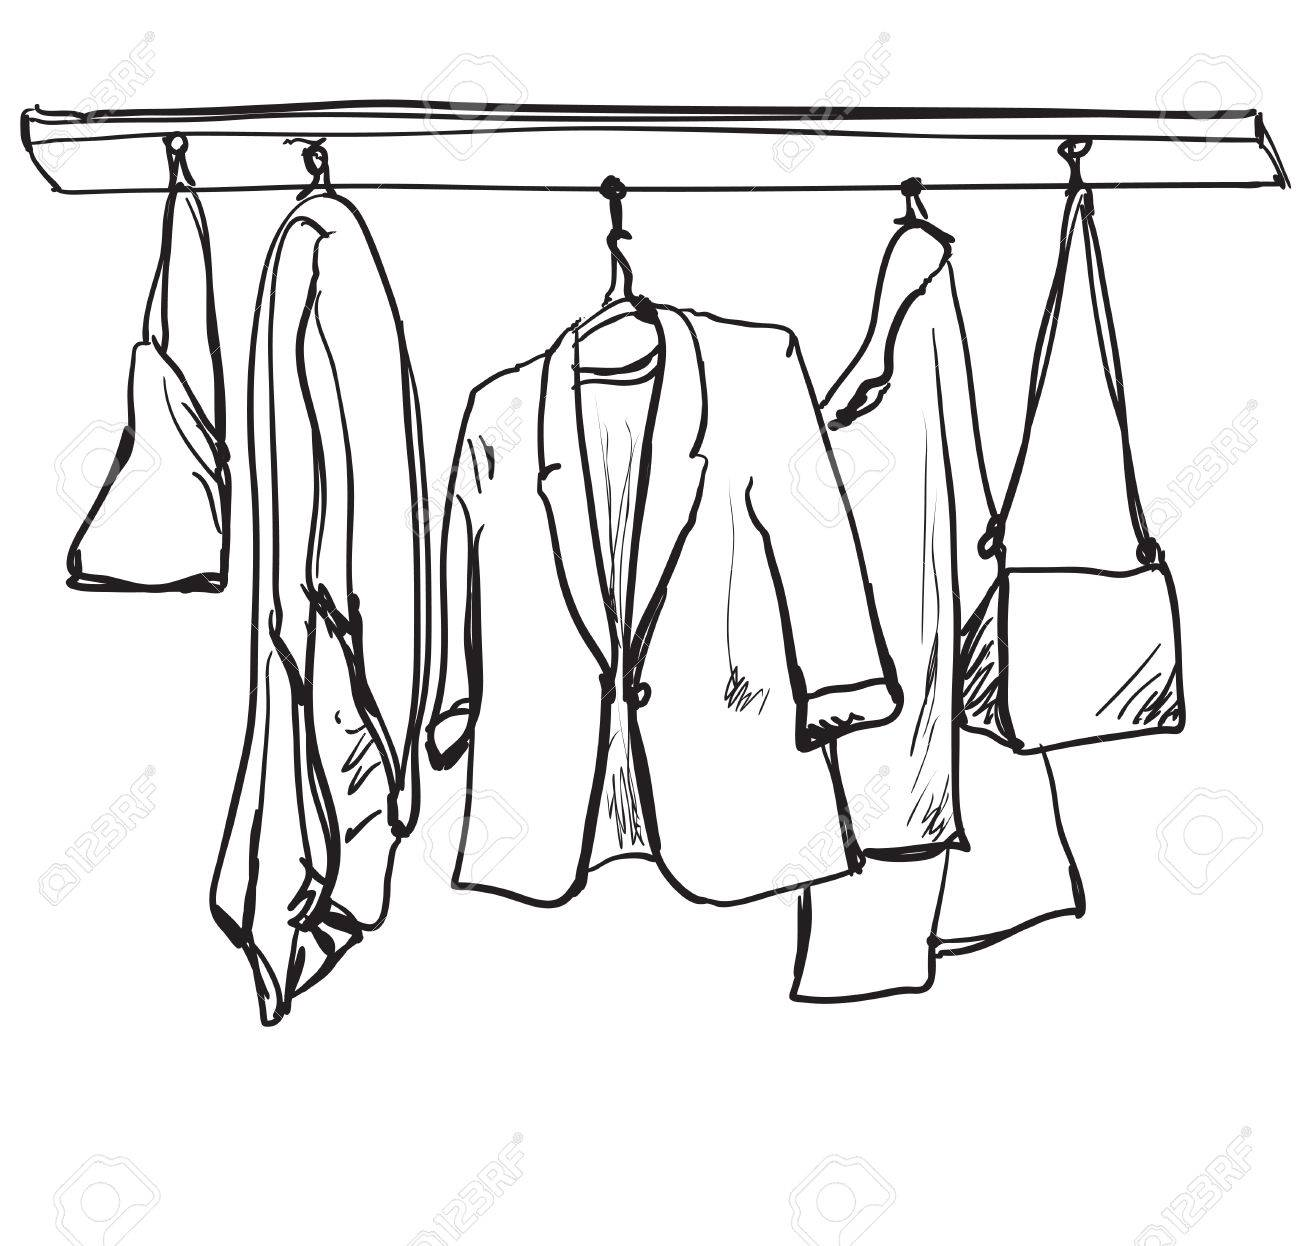 1300x1246 Hand Drawn Illustration Sketch. Fashionable Clothes On Hangers